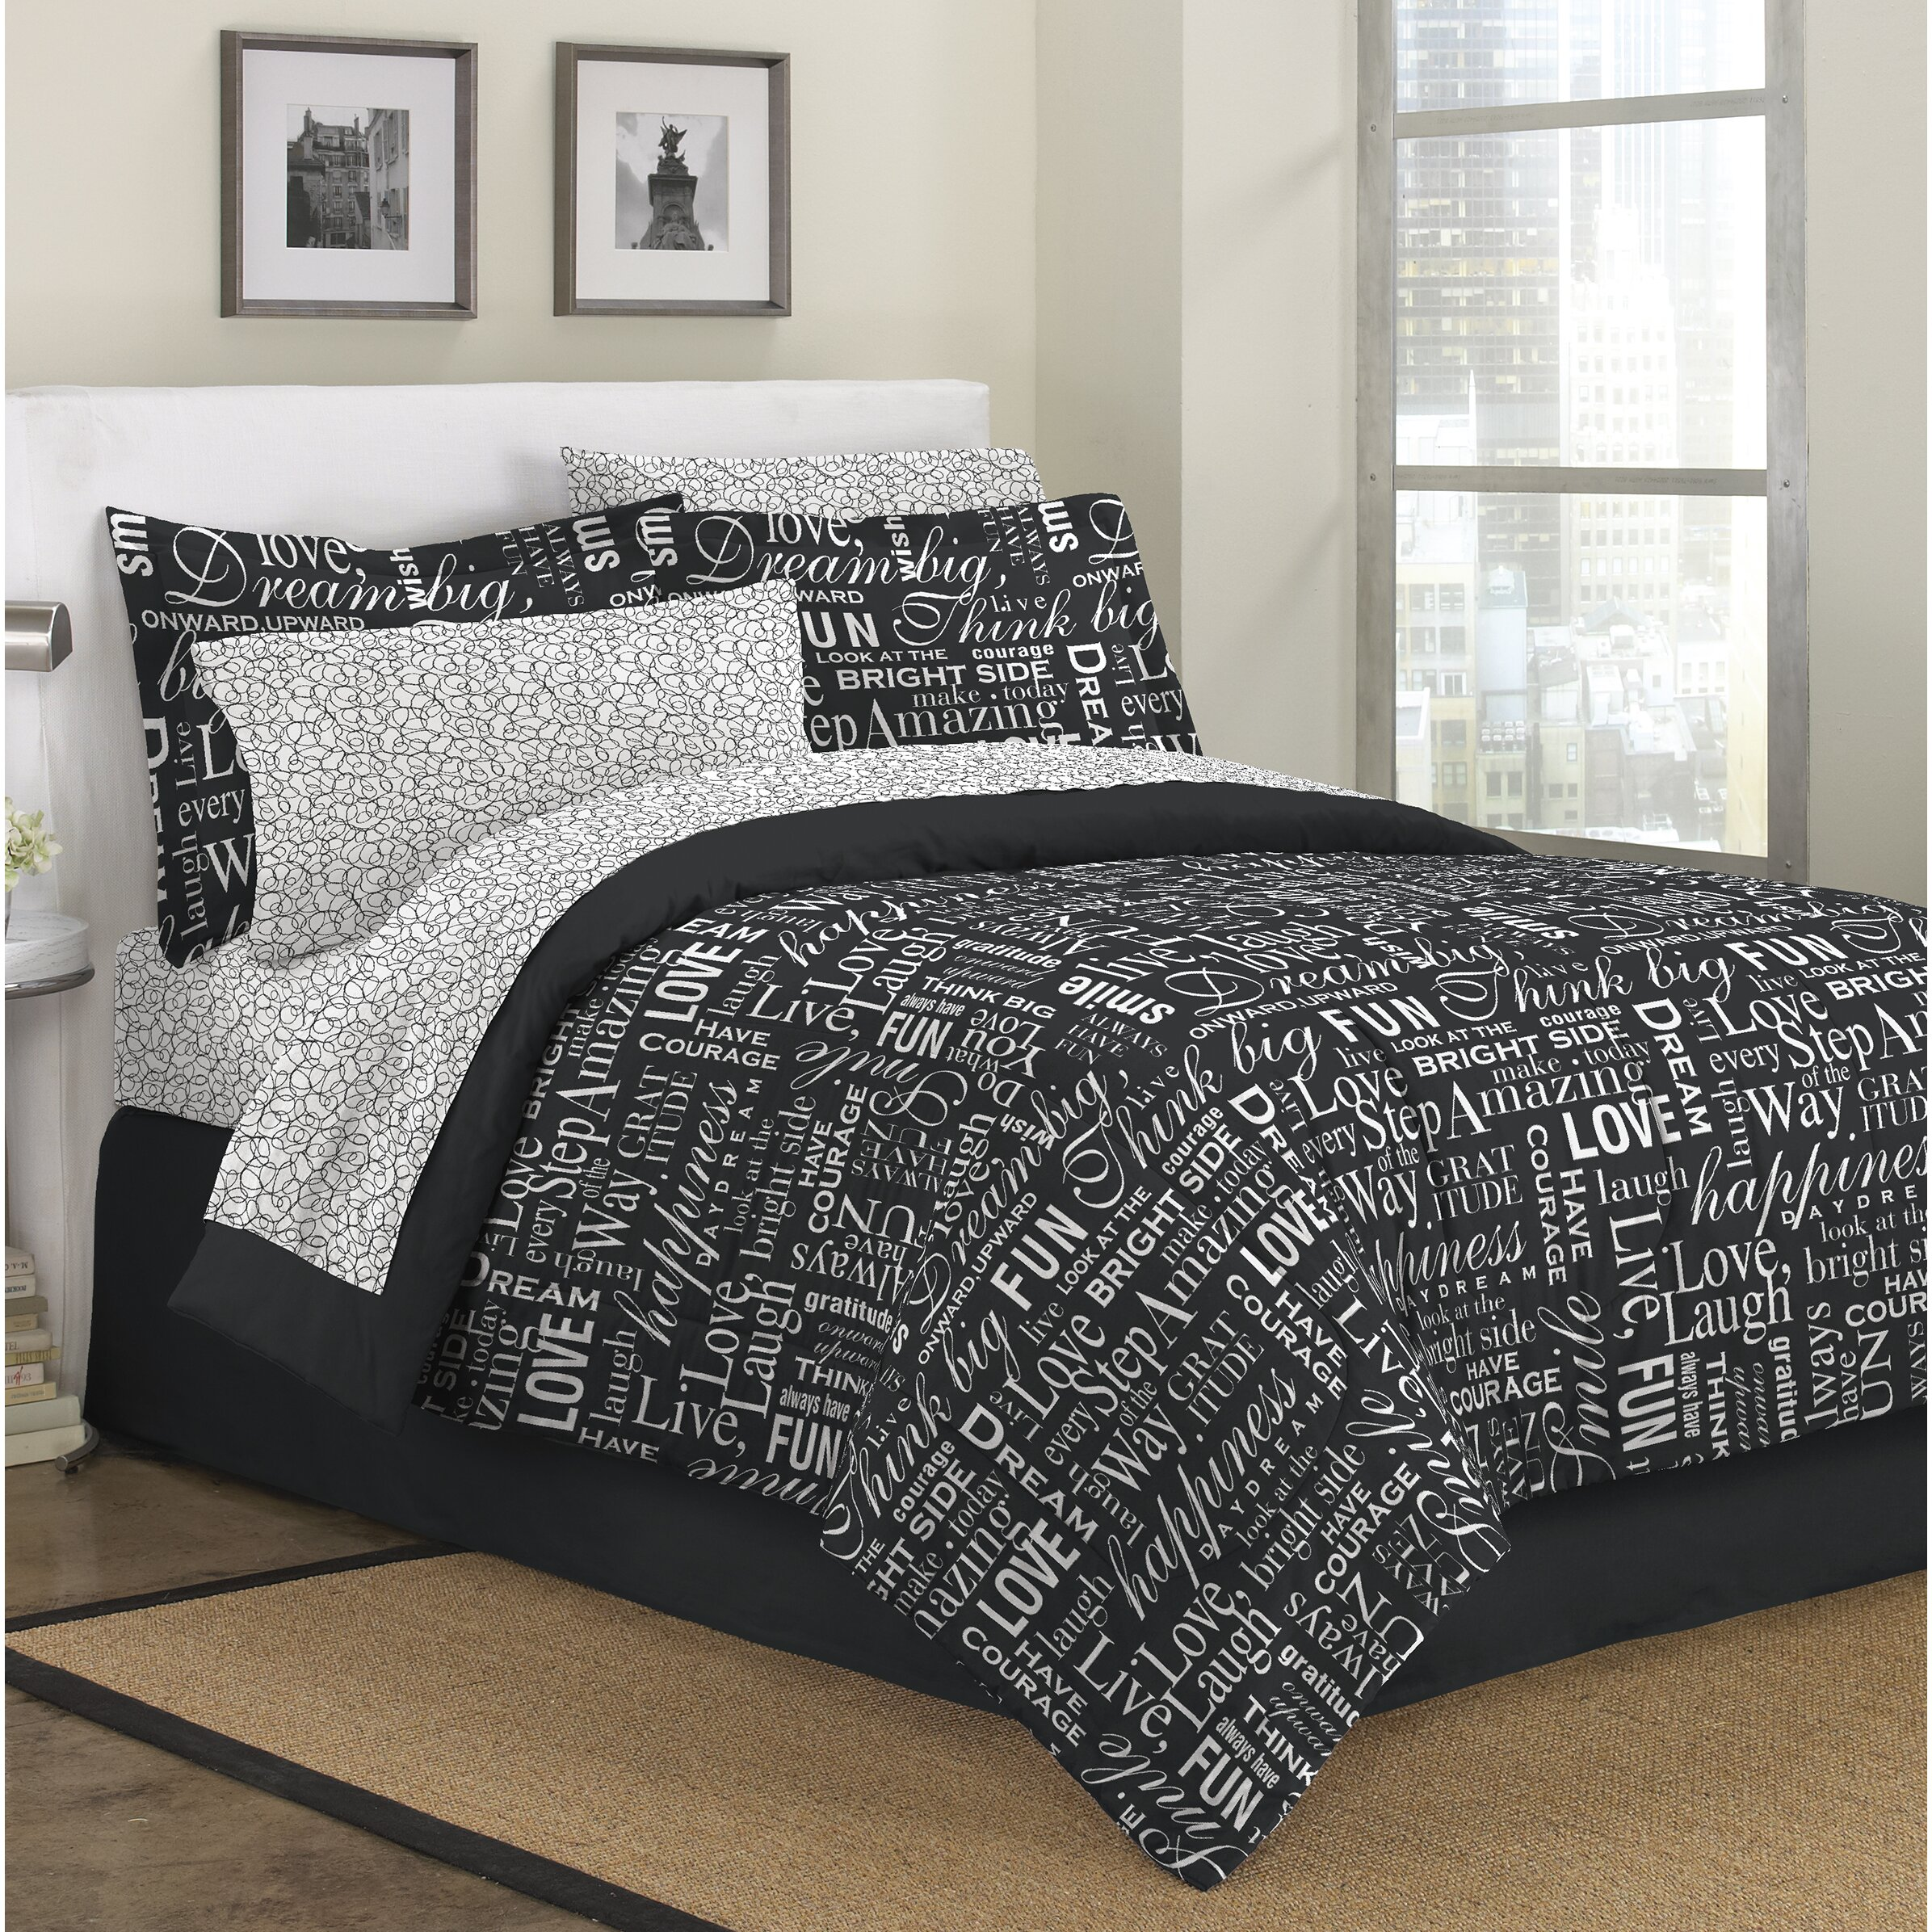 First At Home Live Love Laugh 6 Piece Bed In A Bag Set